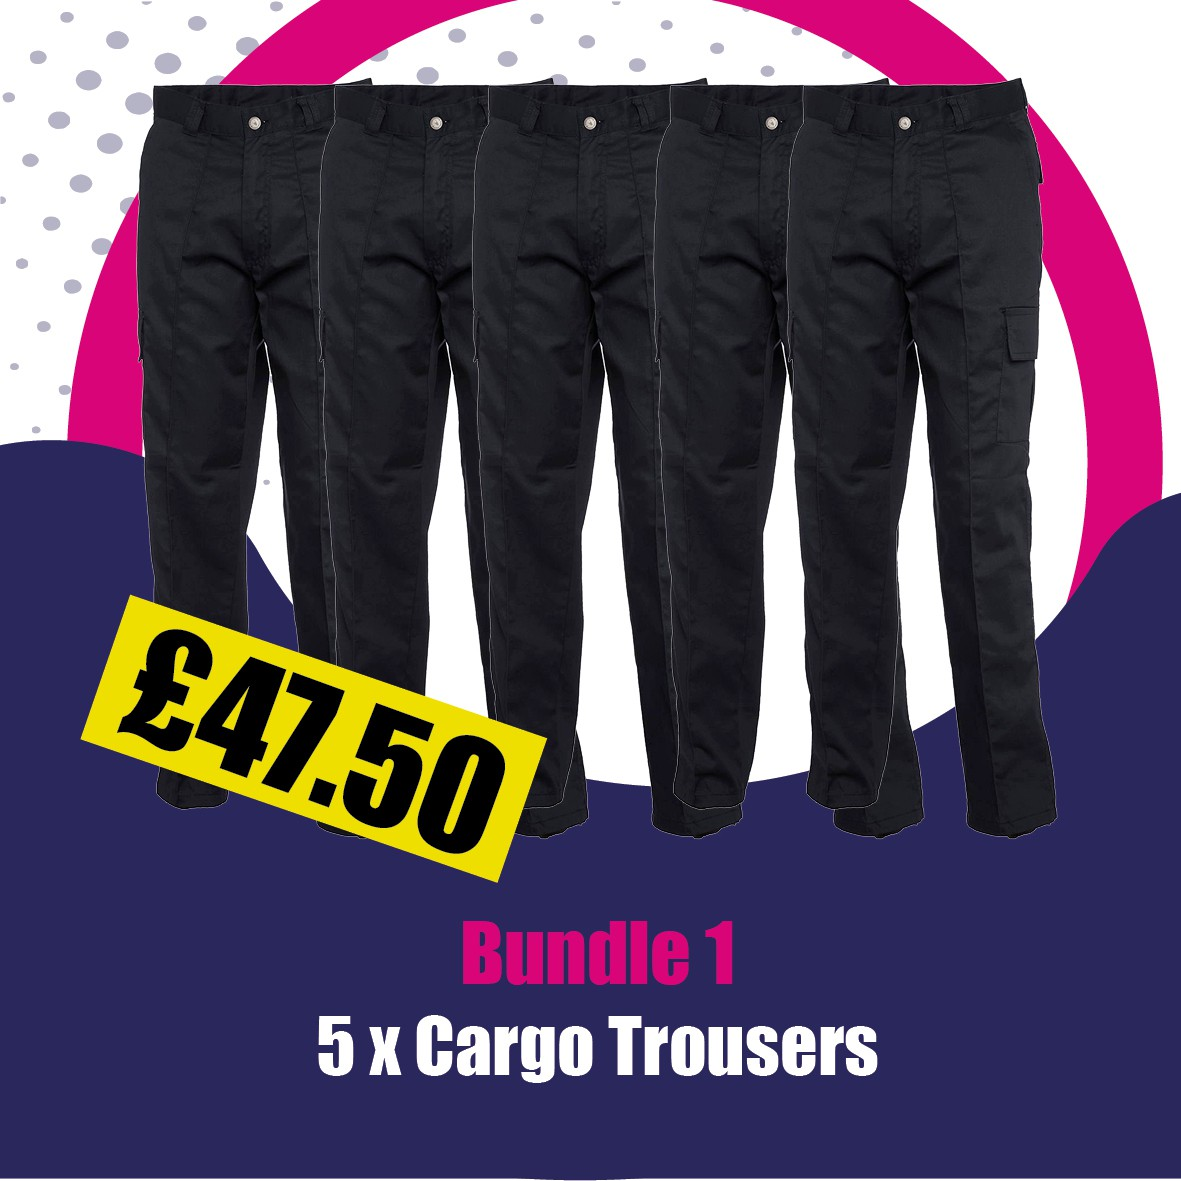 5 X Cargo Trousers Bundle Offer